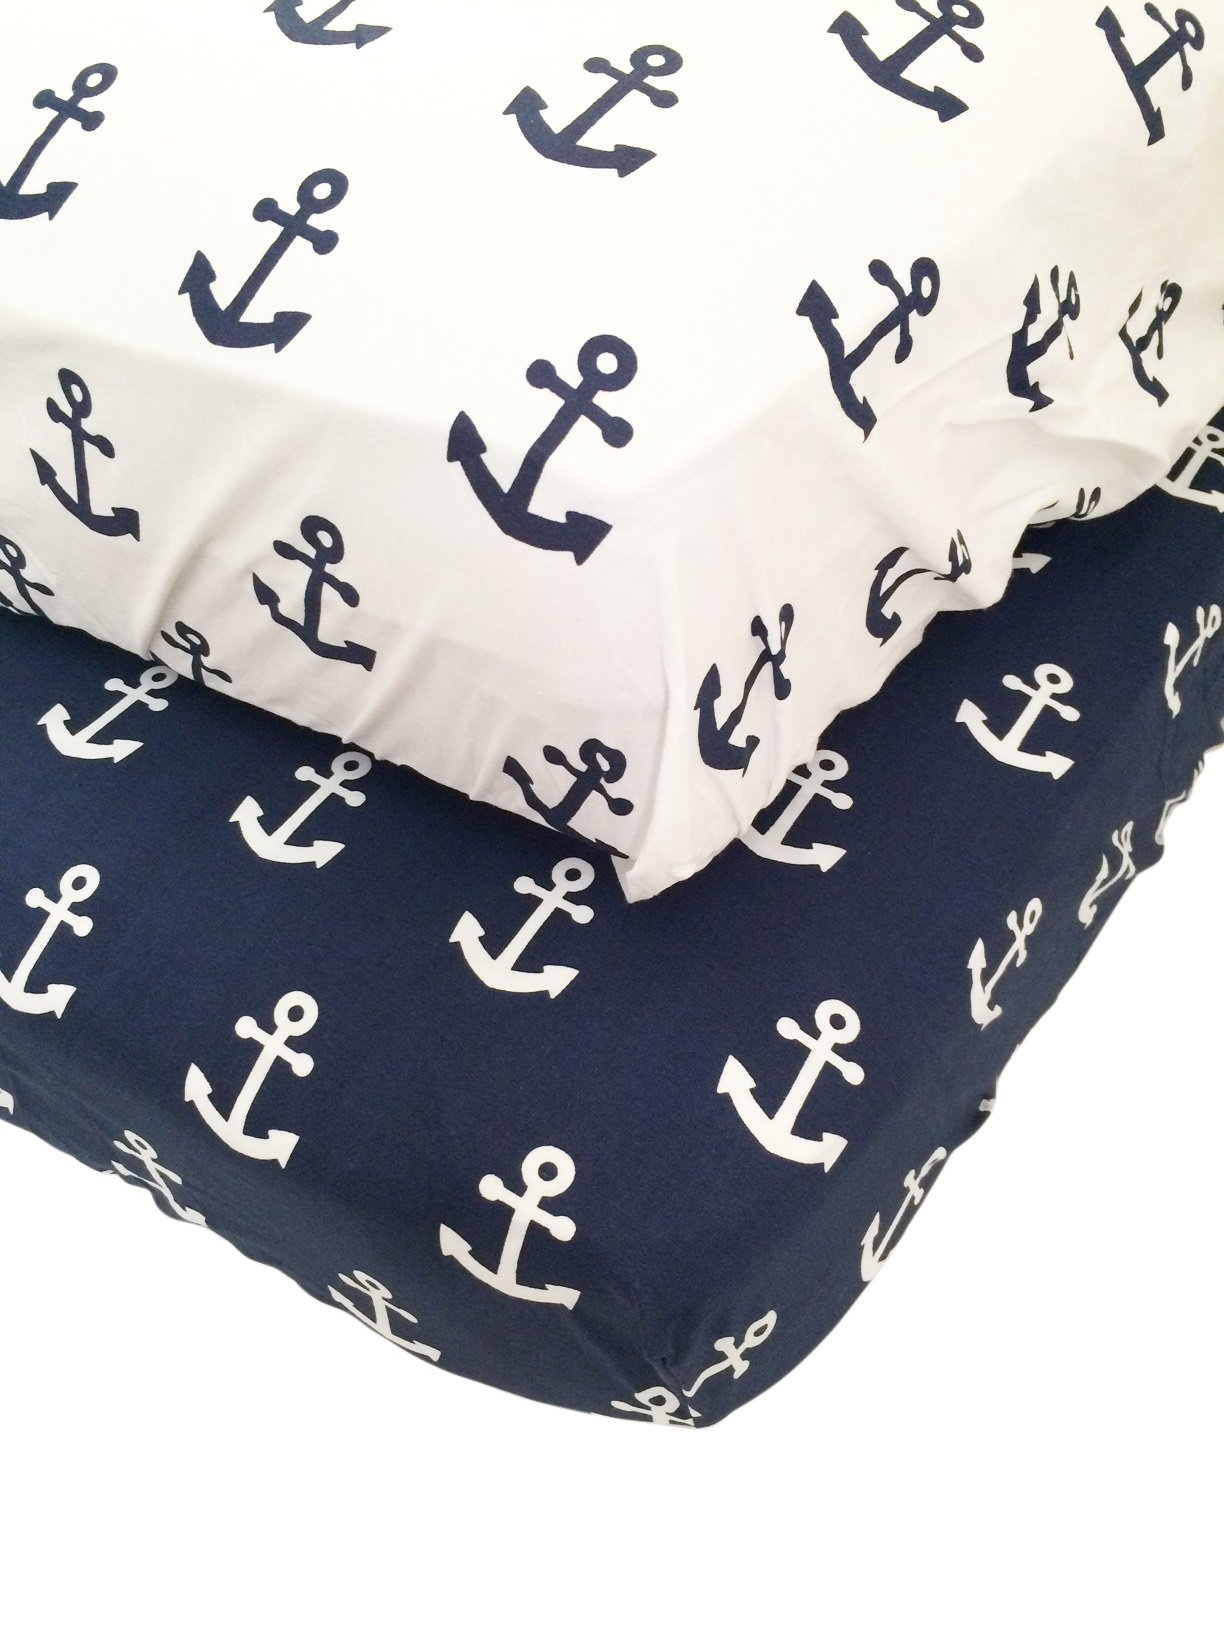 Danha Premium Fitted Cotton Crib Sheet With Anchor Print - Standard Crib Mattress Size - Toddler, Kids Bedding - Nautical Nursery Décor Theme - Ideal Baby Shower Gift For Infant Boys Or Girls by Danha